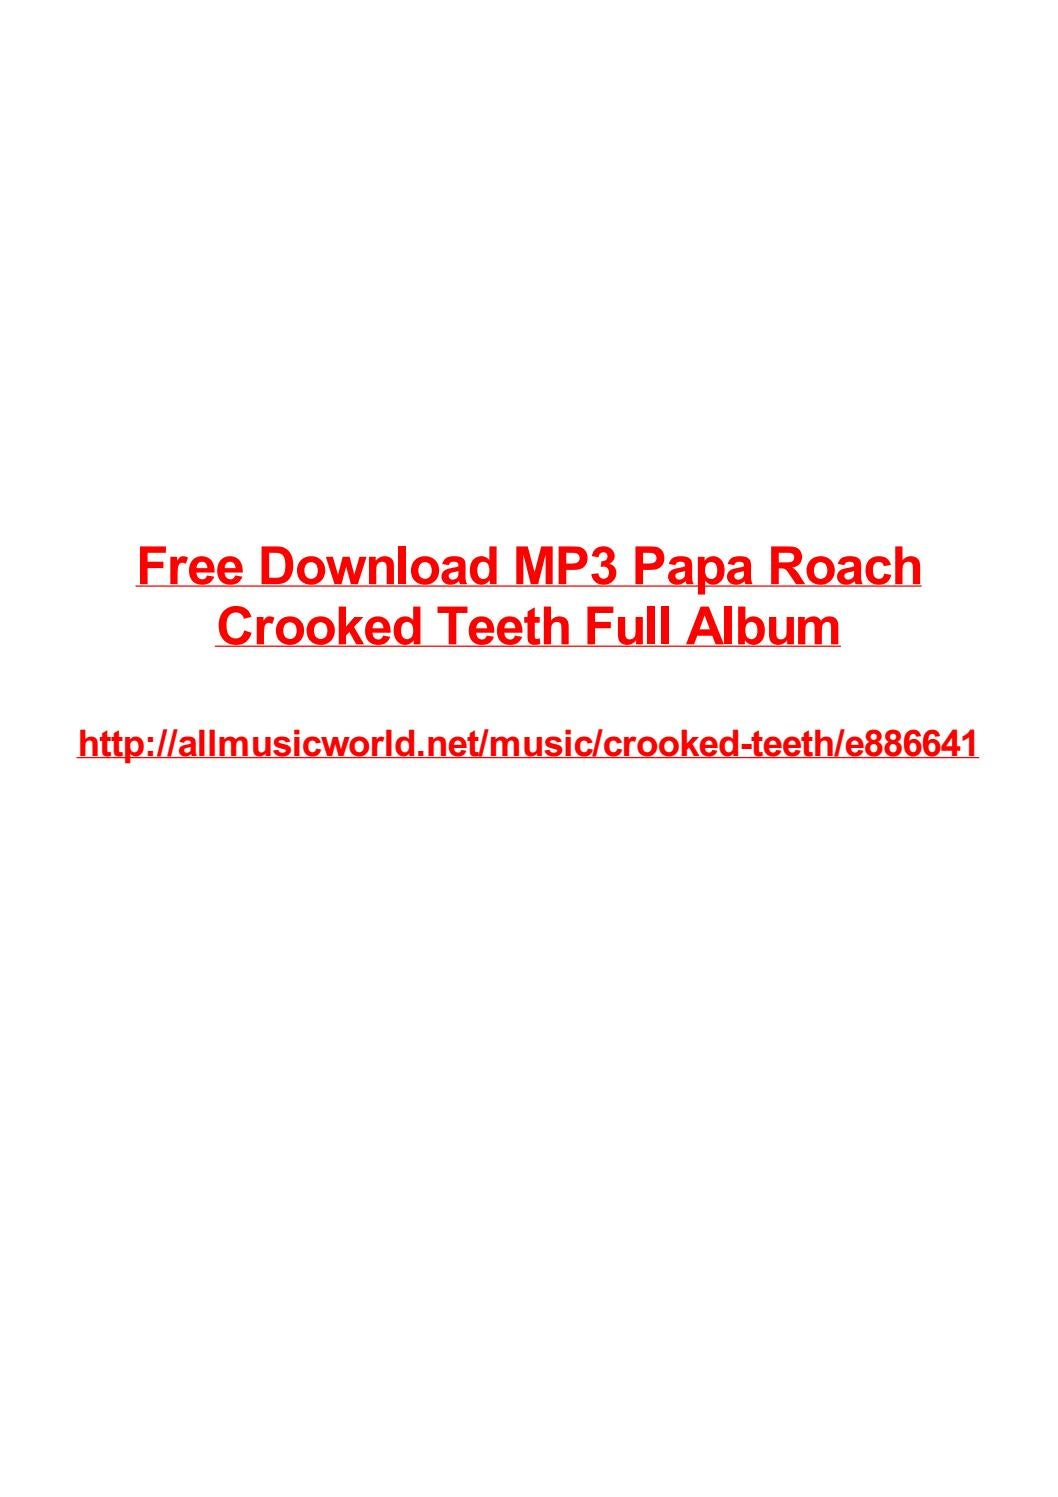 Free Download Mp3 Papa Roach Crooked Teeth Full Album By Max Polansky Issuu